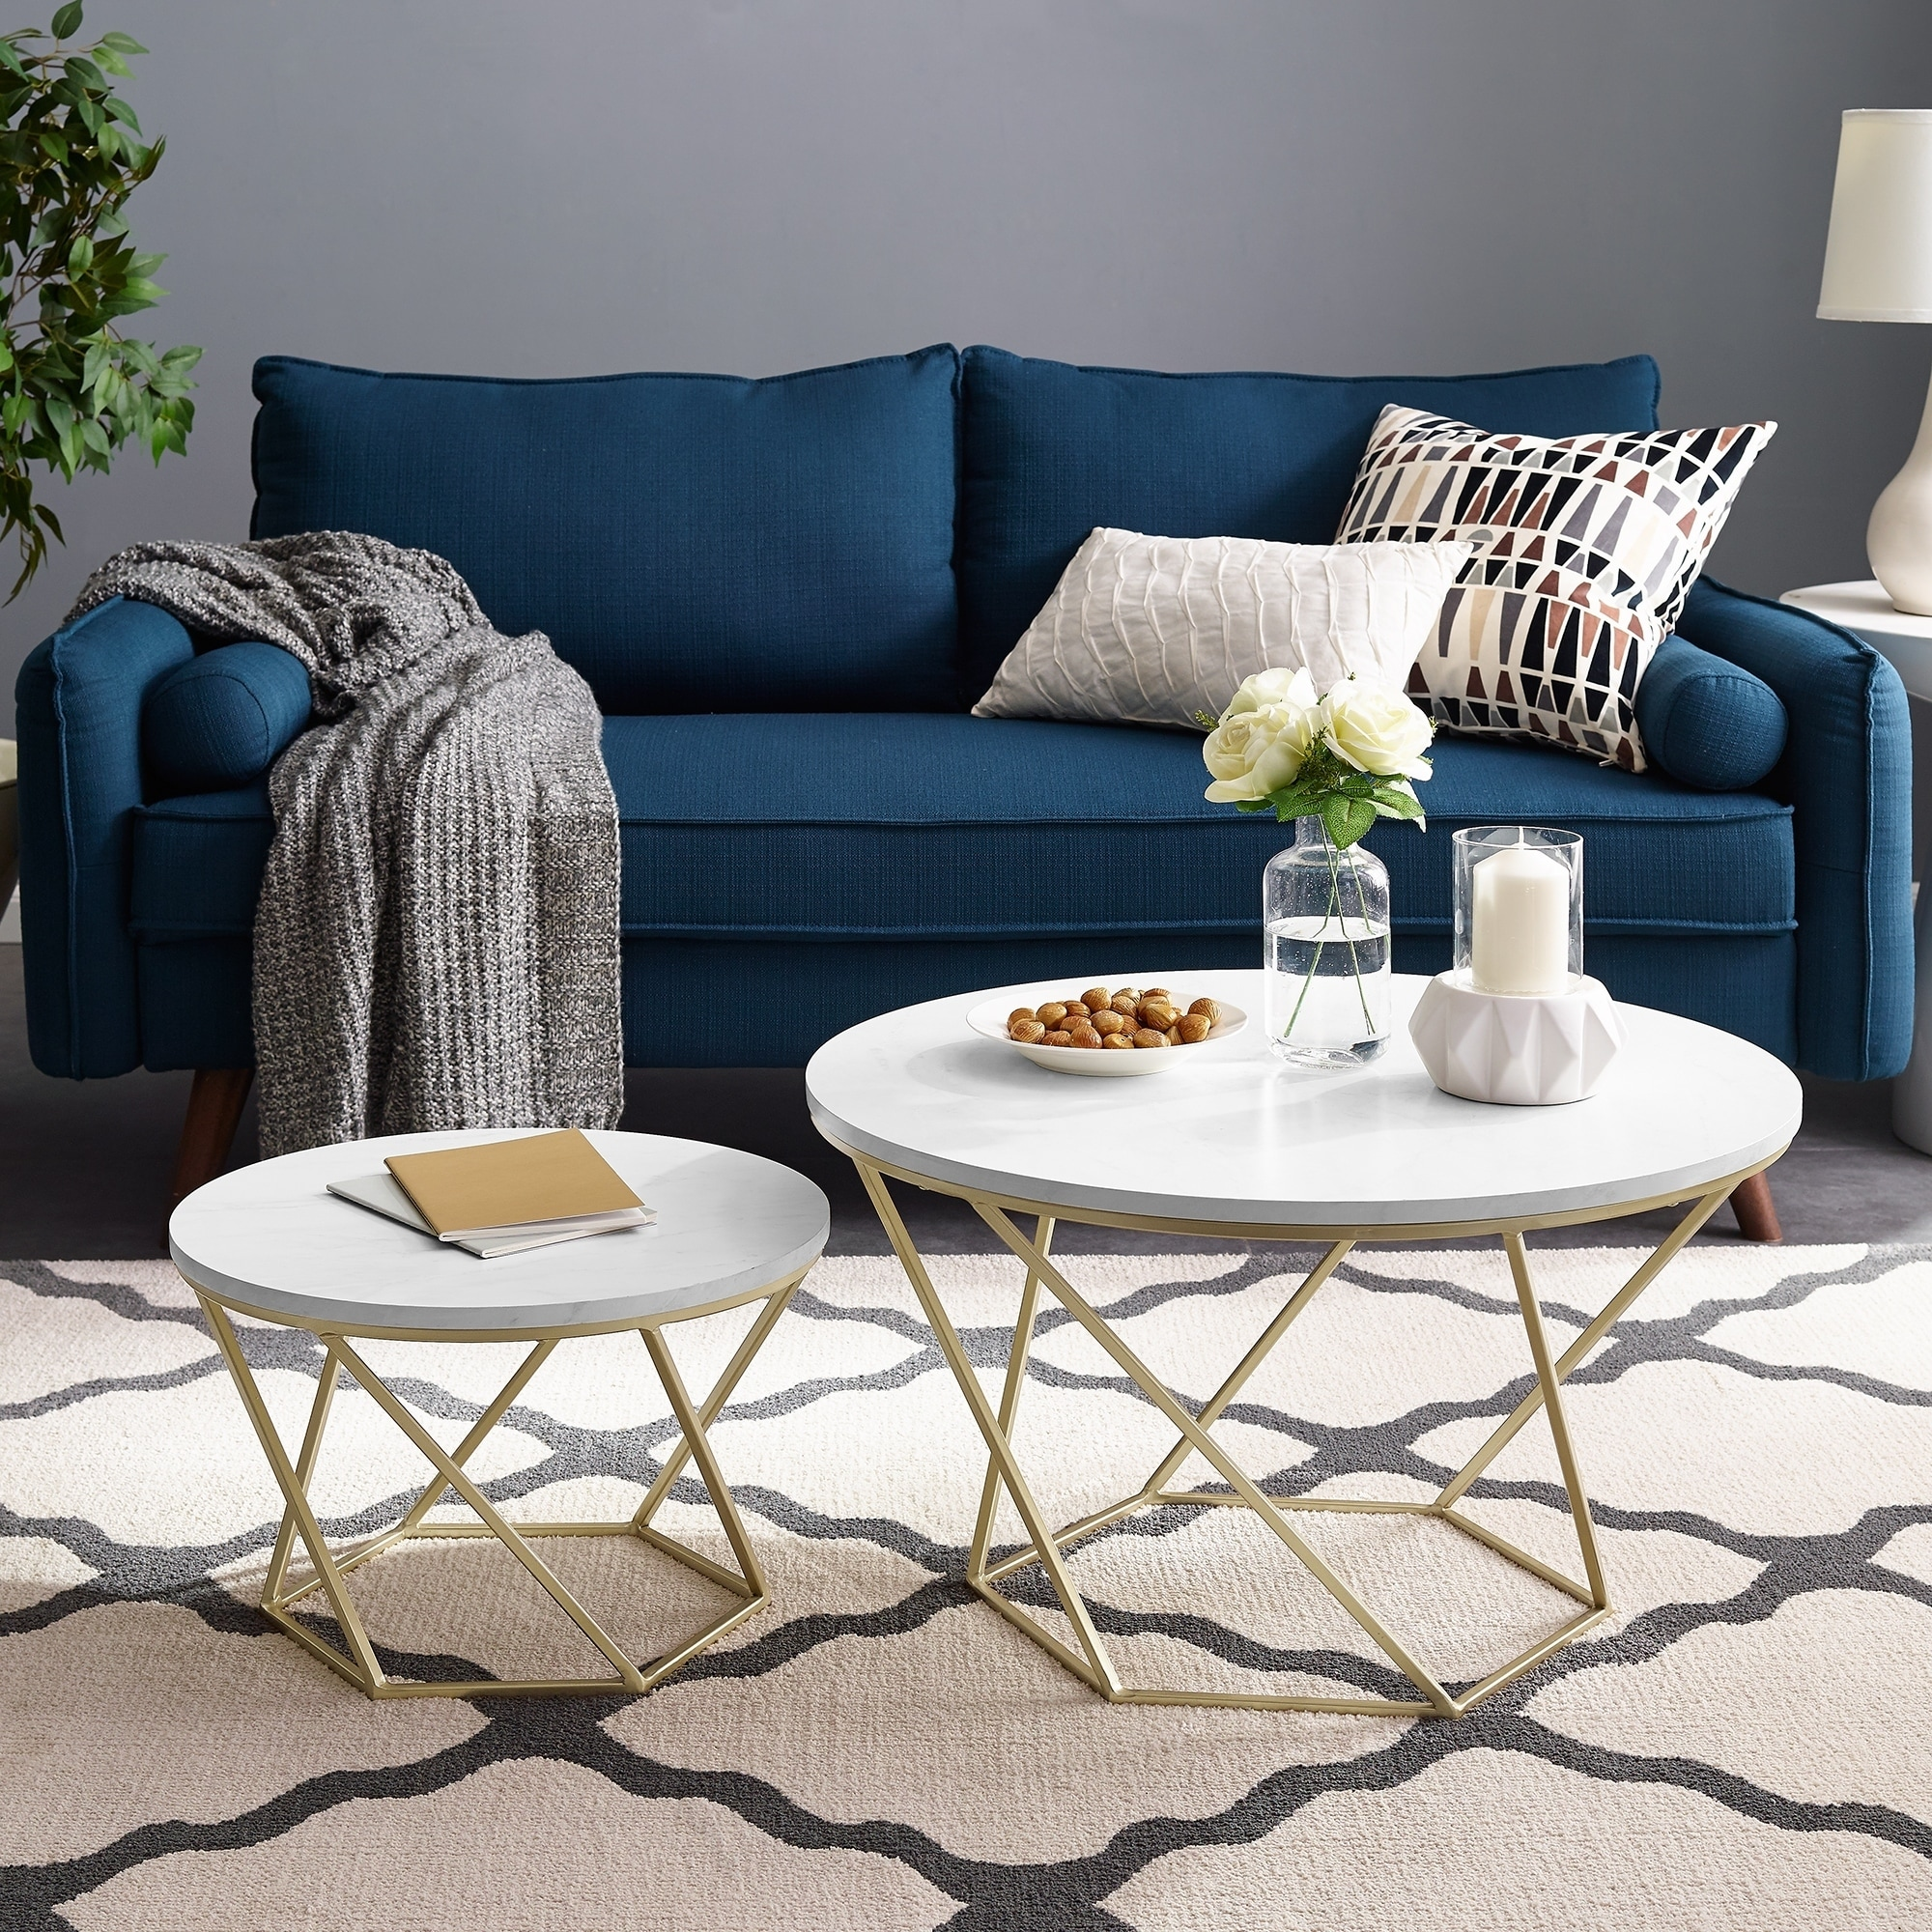 Round Nesting Coffee Tables - White Faux Marble / Gold - 28 x 28 x 16h